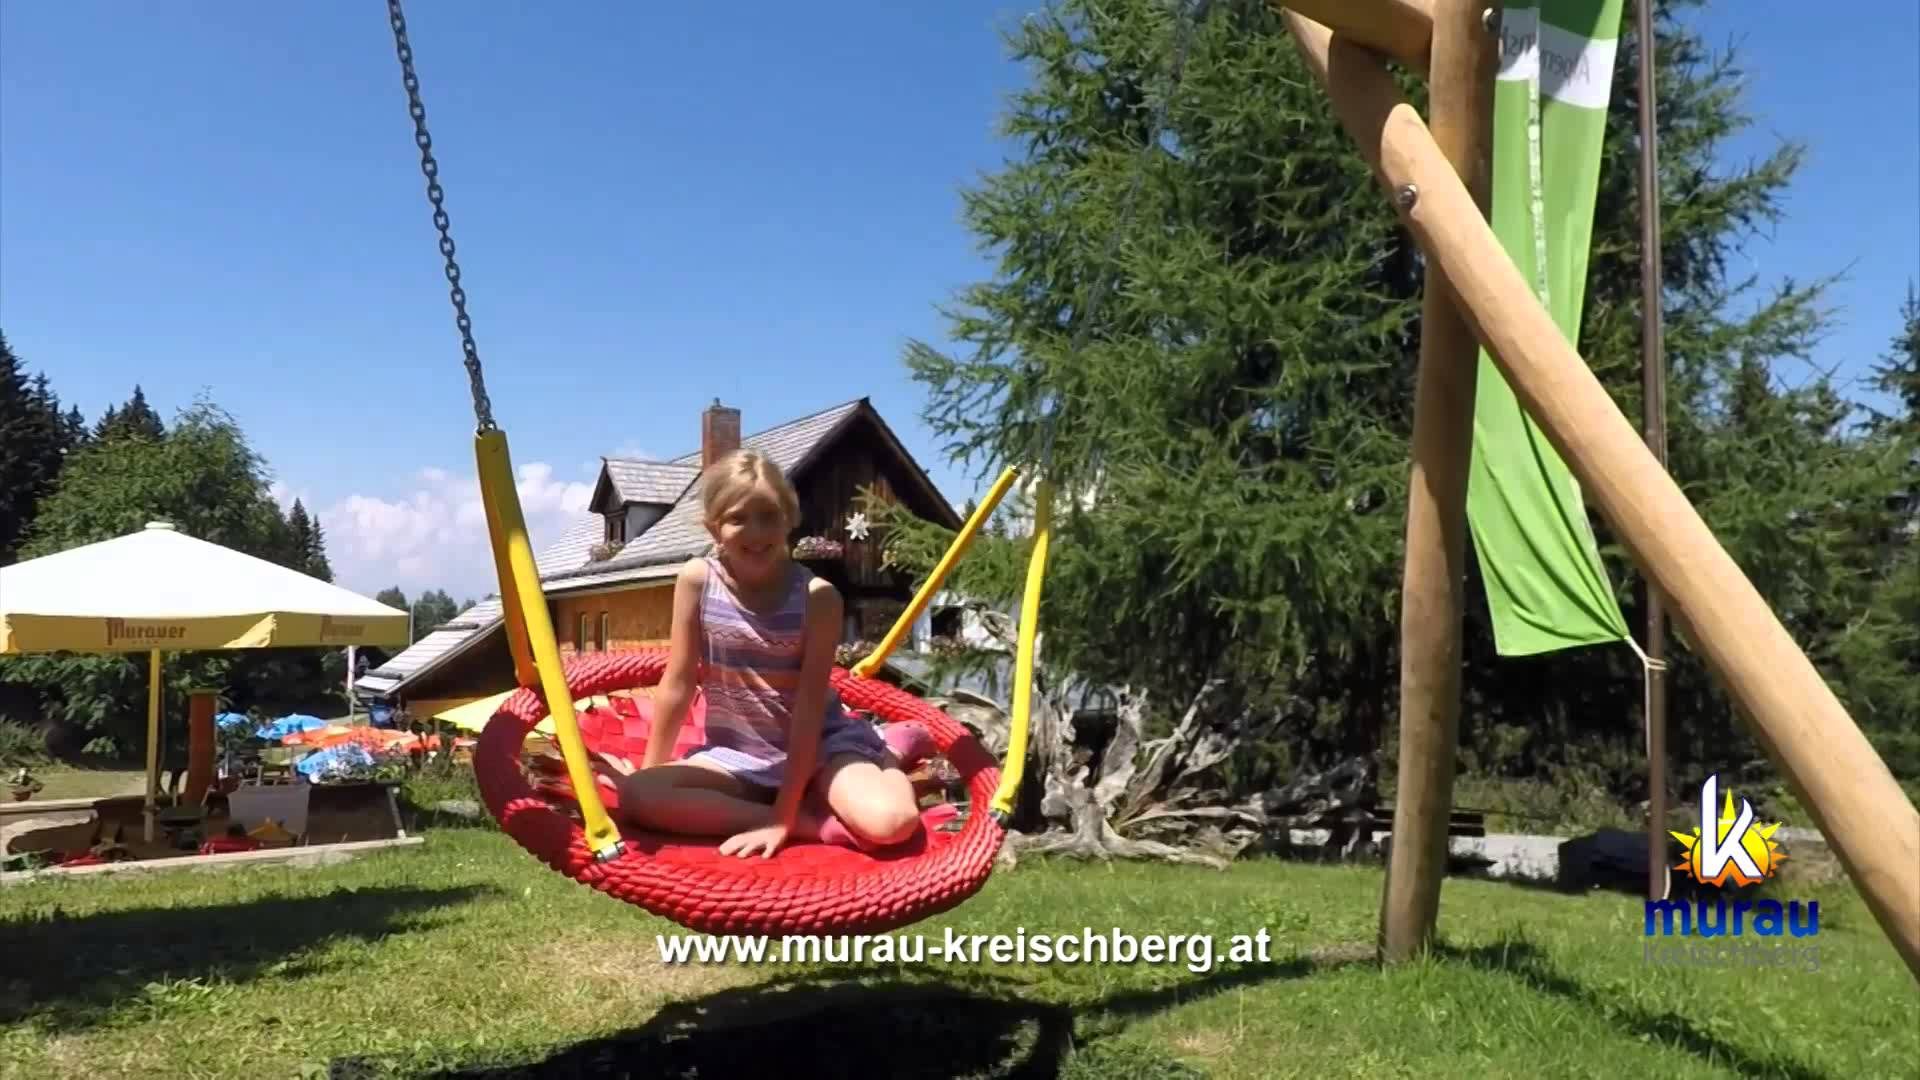 Familienspass in der Region Murau